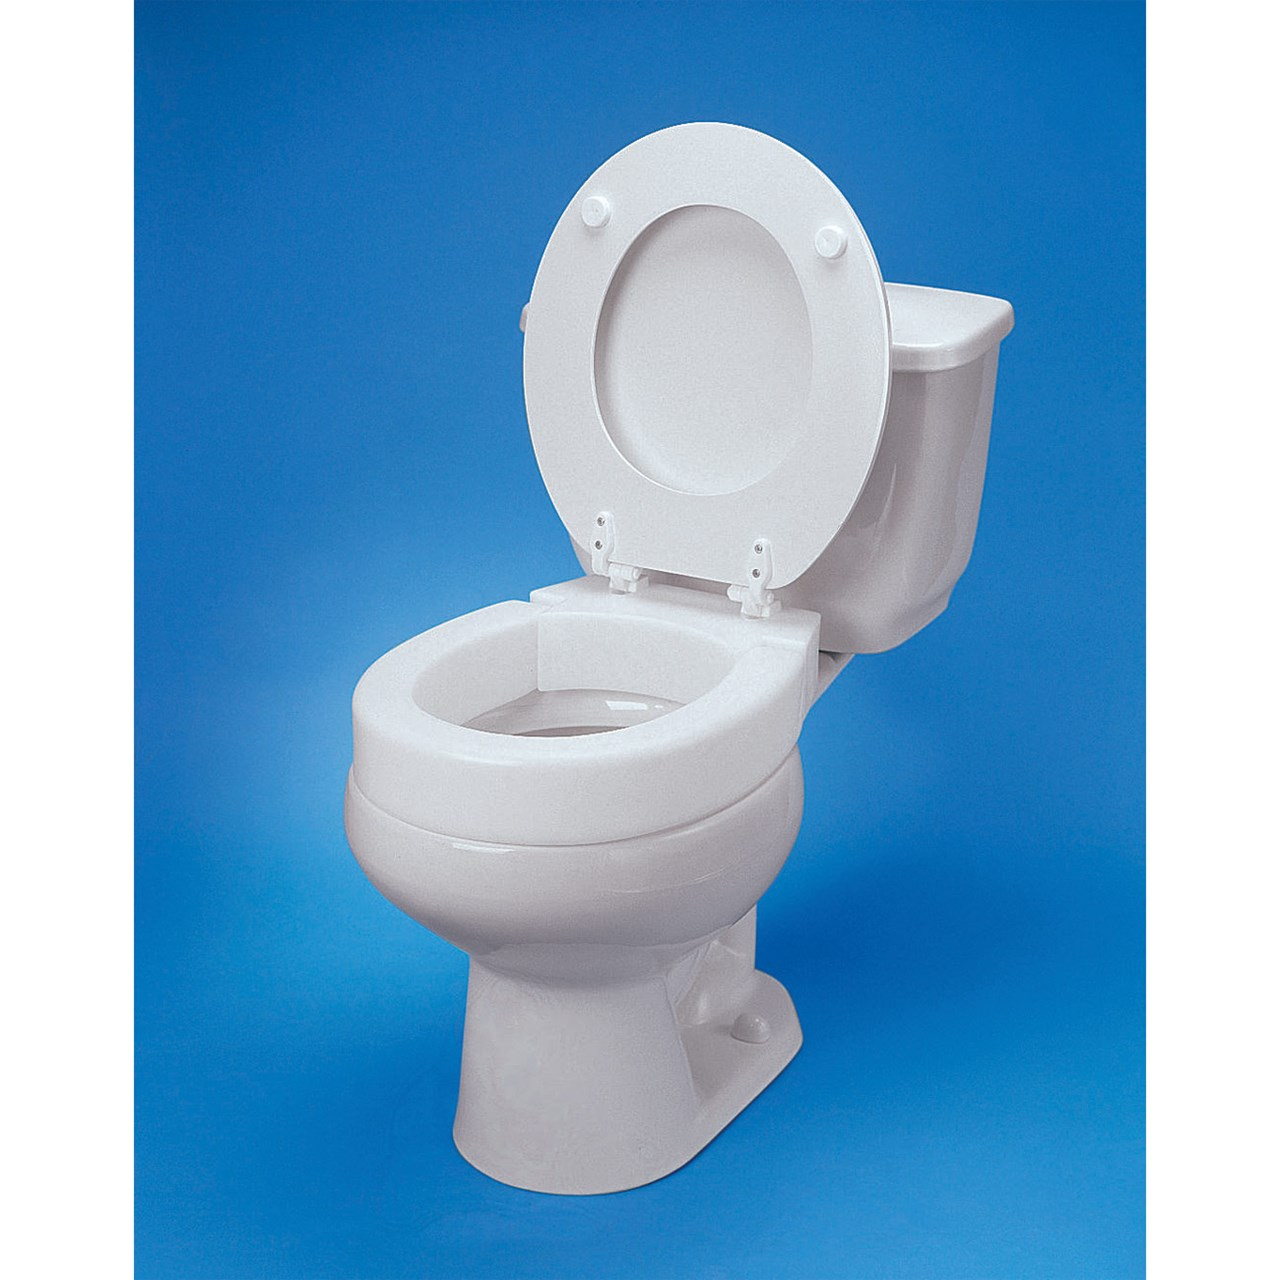 Toilet Seat Maxiaids | Hinged Elevated Toilet Seat - Standard